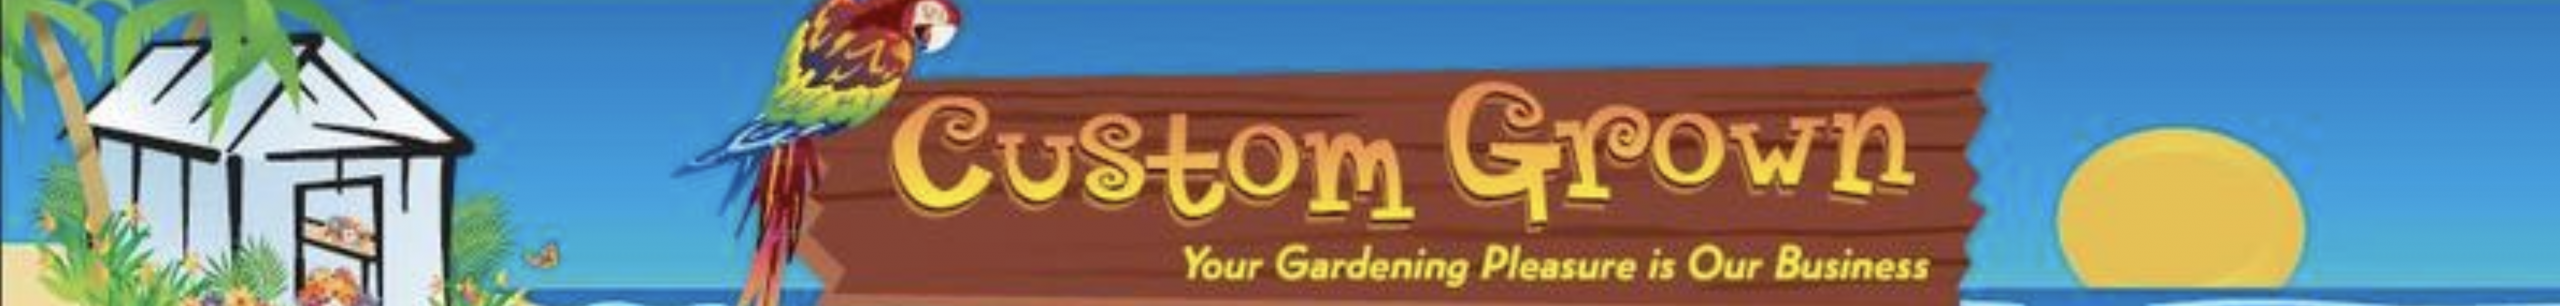 Custom Grown Greenhouse and Garden Center